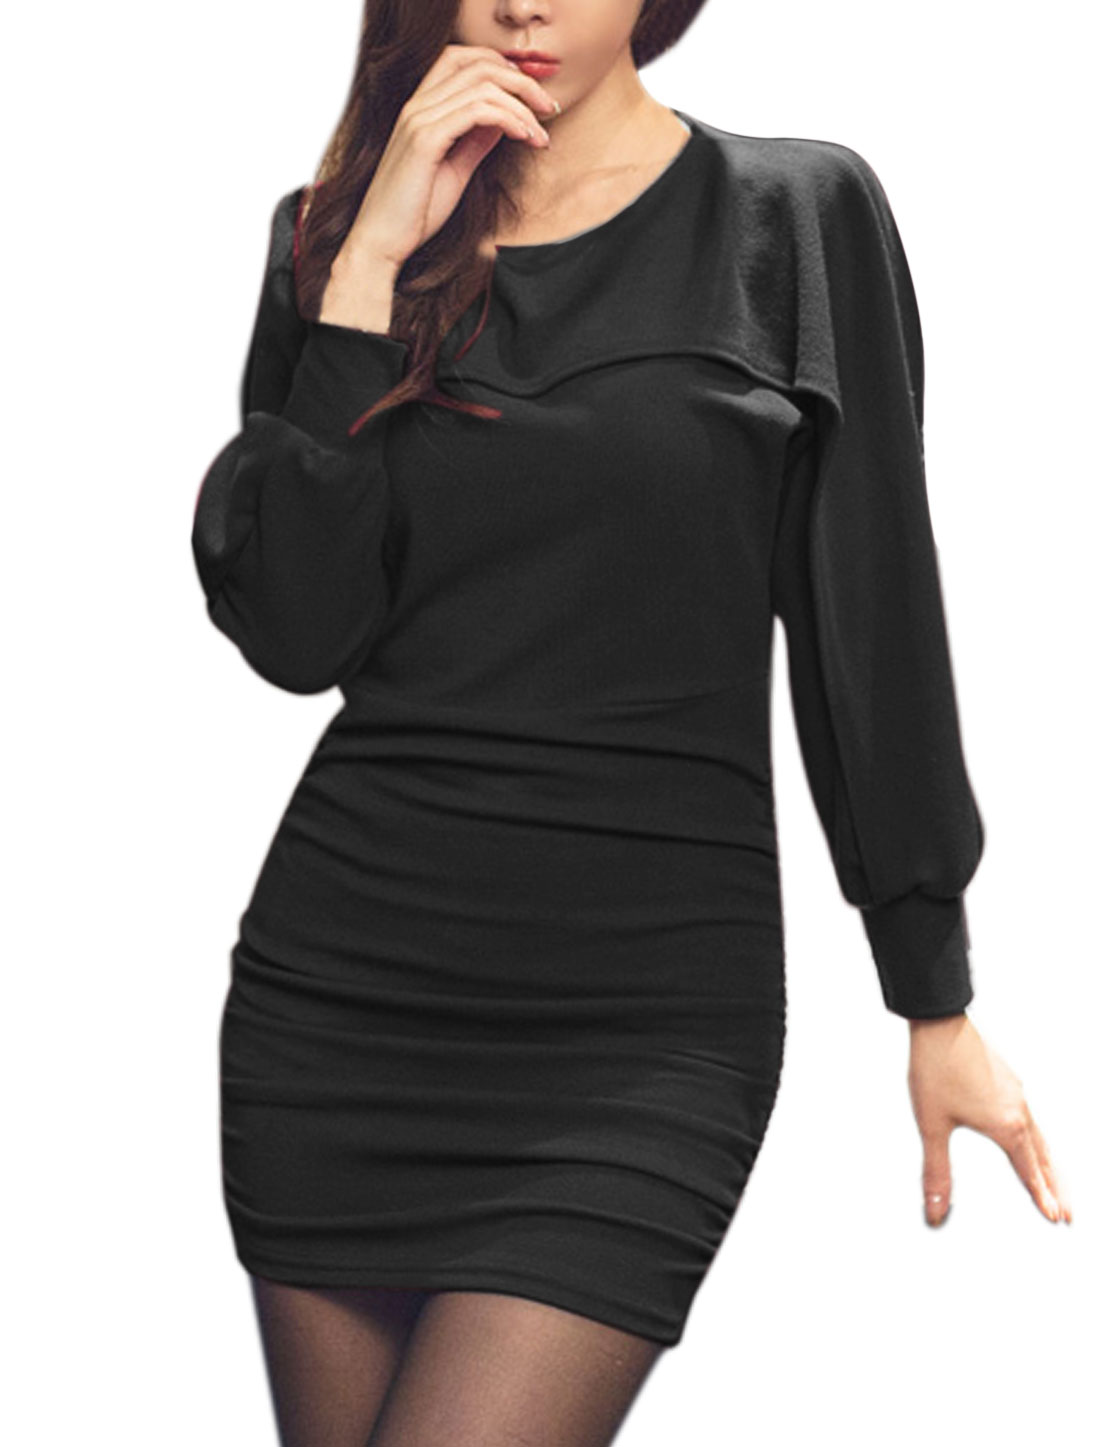 Women Layered Ruched Batwing Wiggle Dress Black M